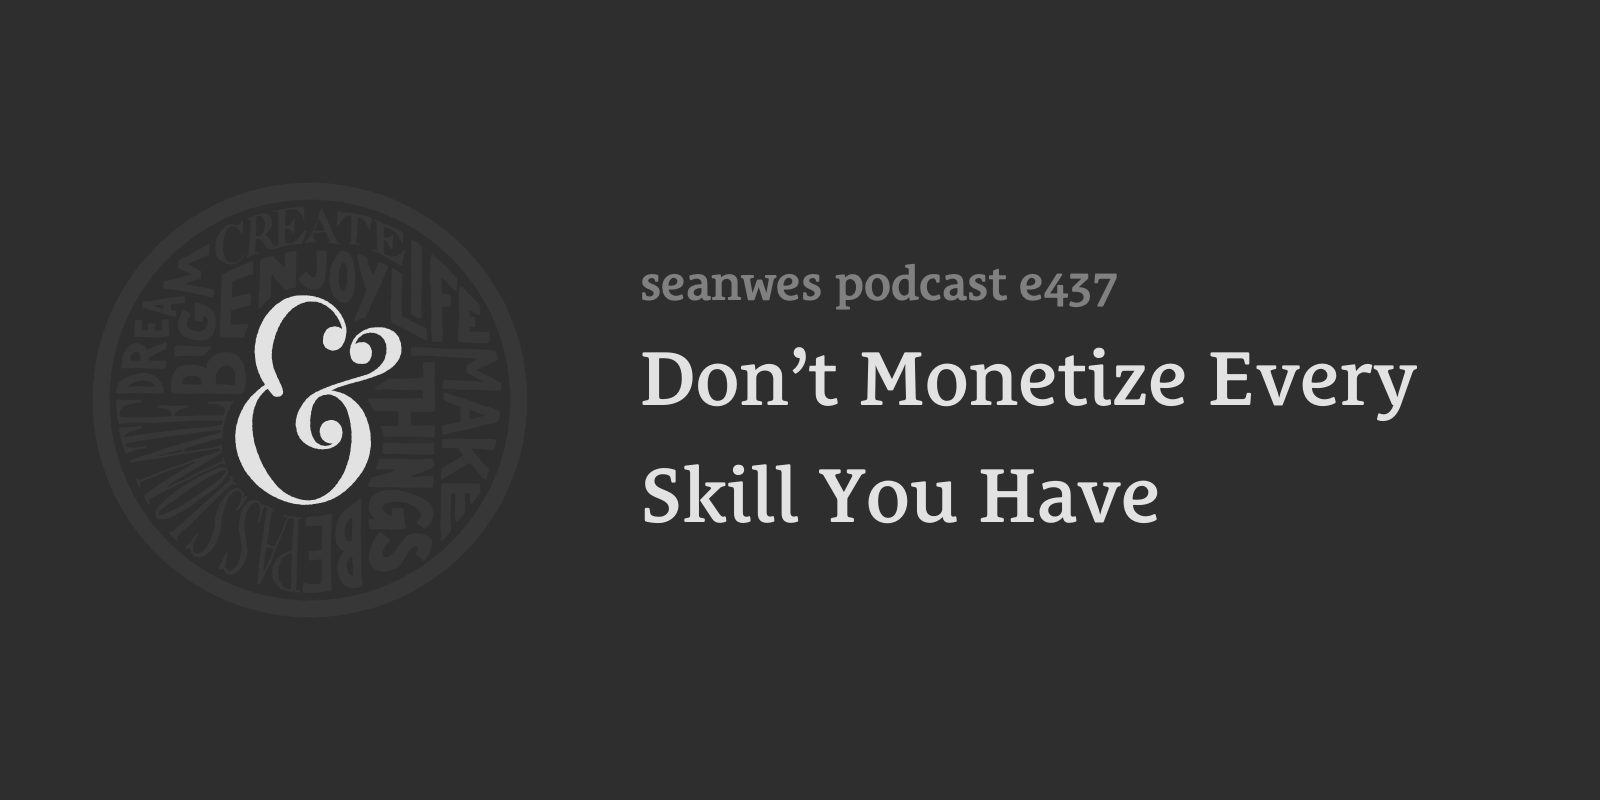 seanwes podcast - Tangible insights on creativity and business—from